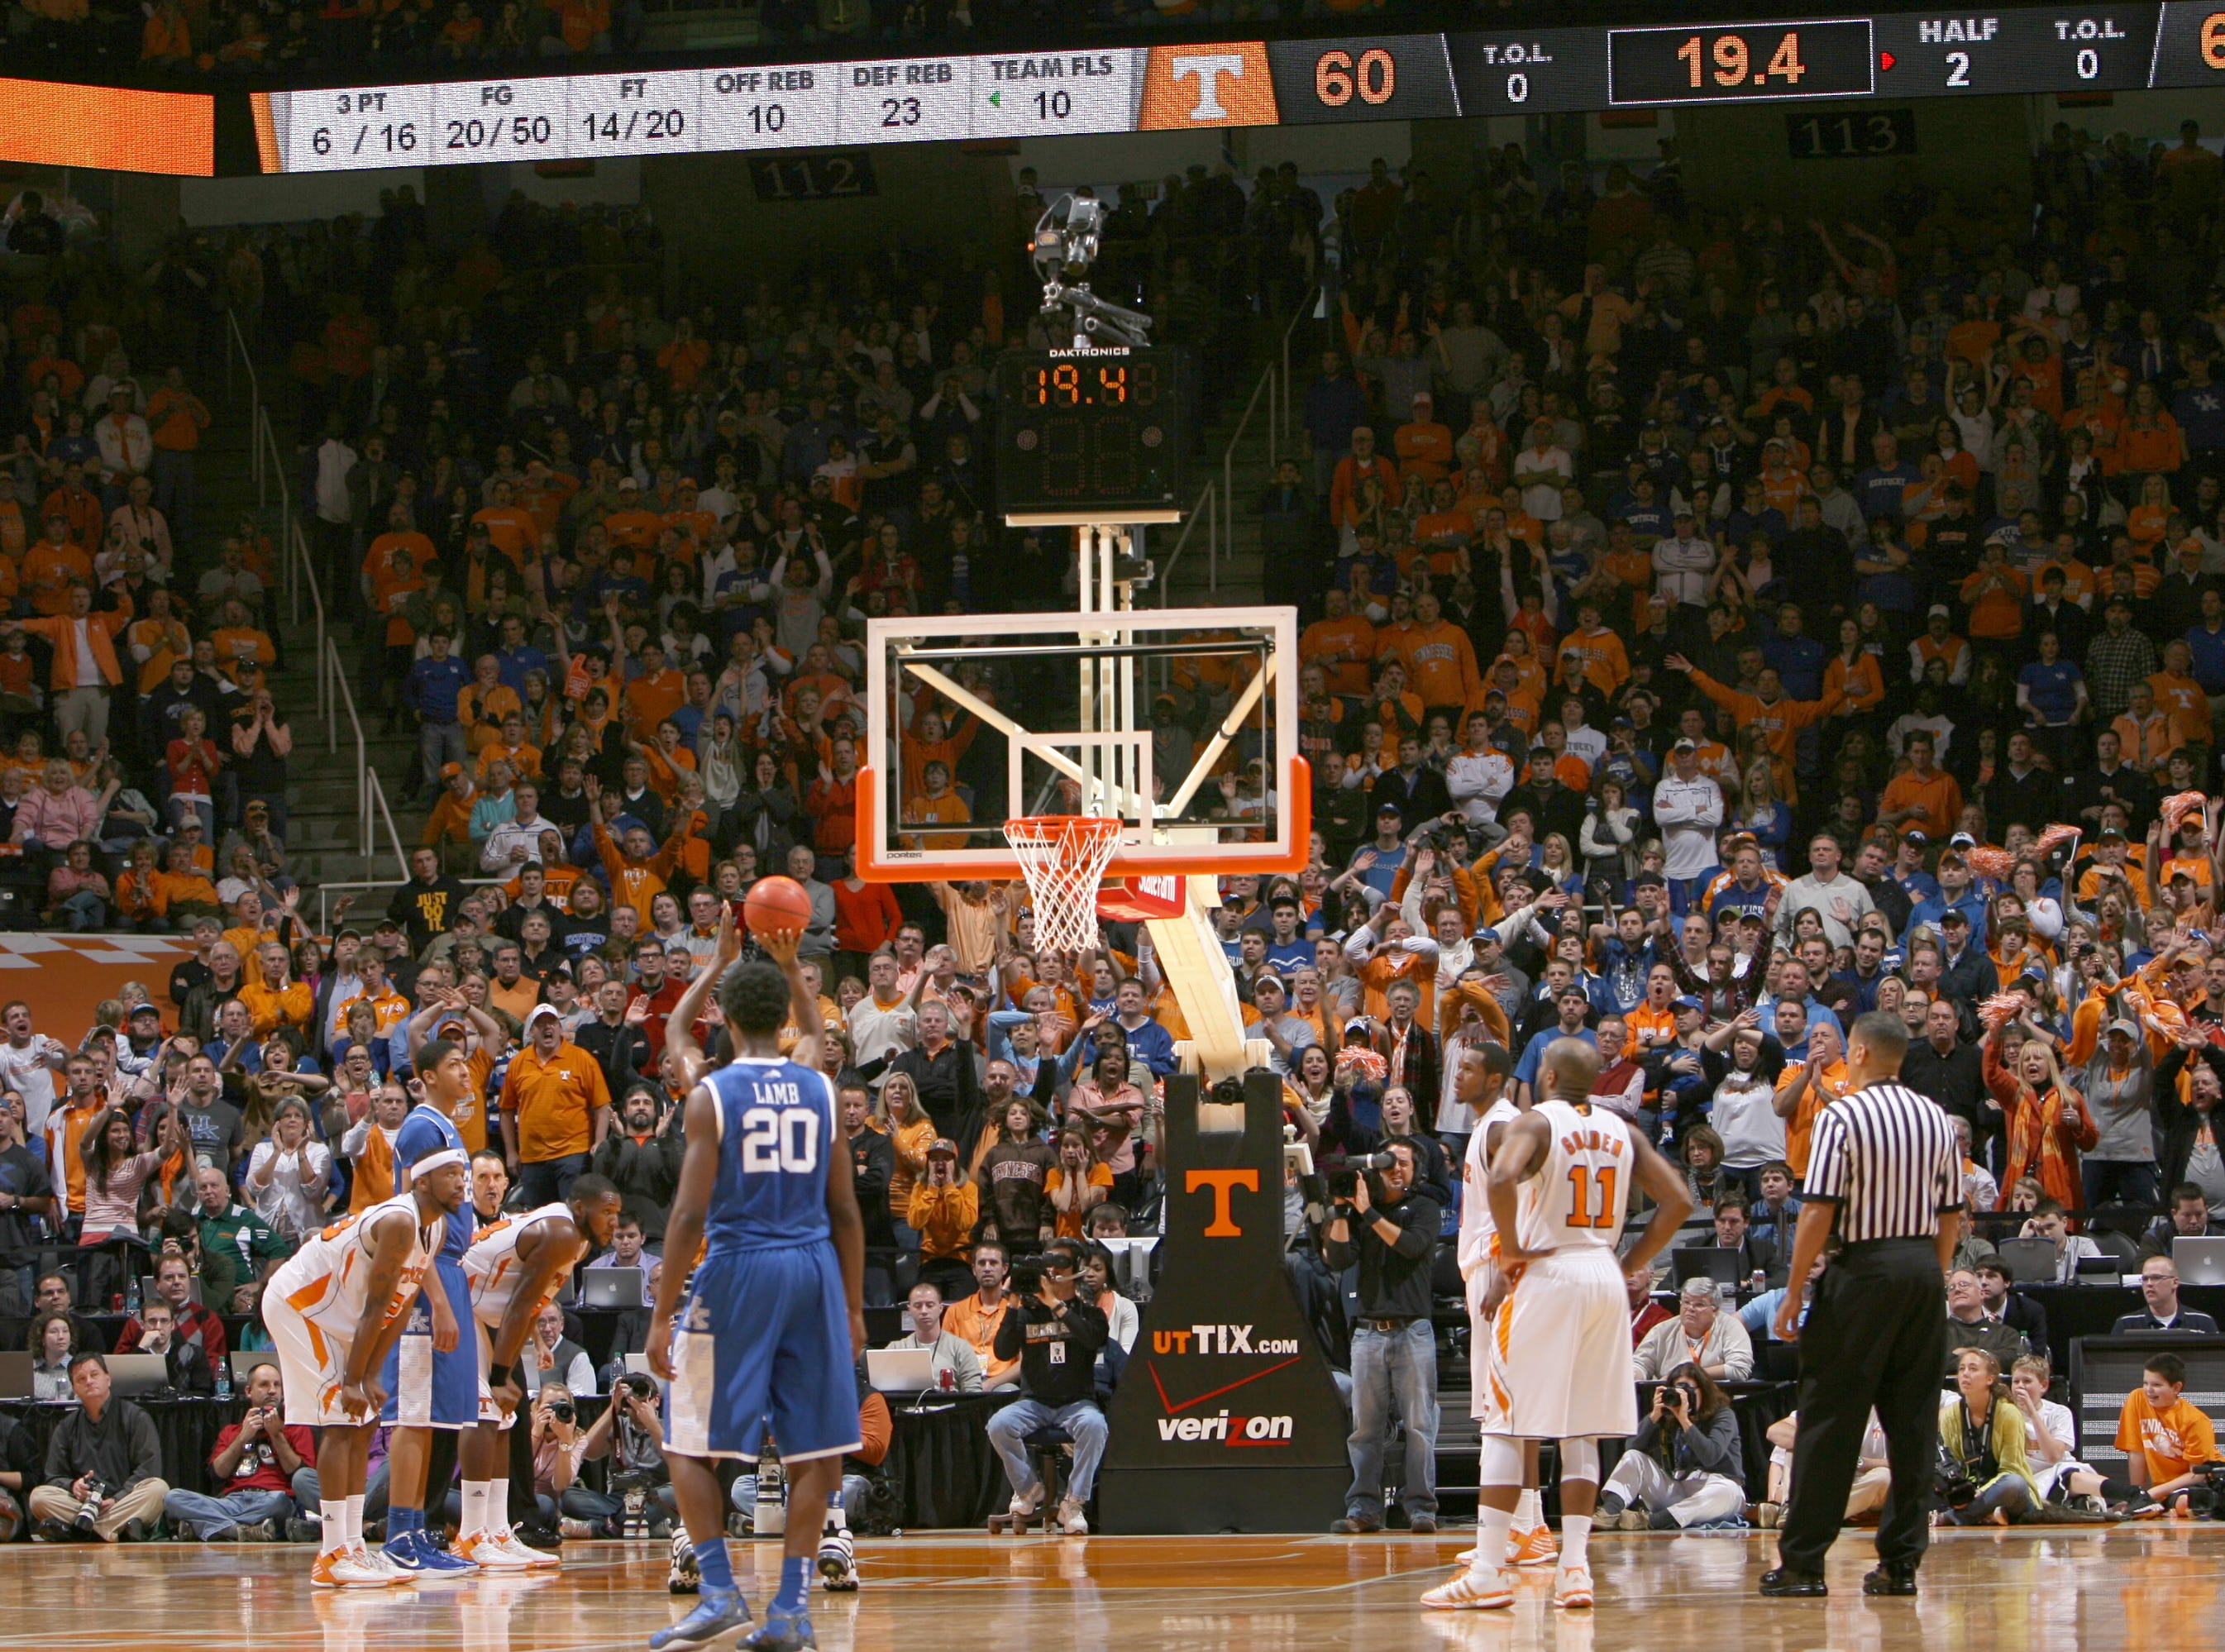 Tennessee takes on Kentucky at Thompson-Boling Arena Saturday, Jan. 14, 2012.  Attendance at Tennessee men's basketball games ranks in the top five in the nation.